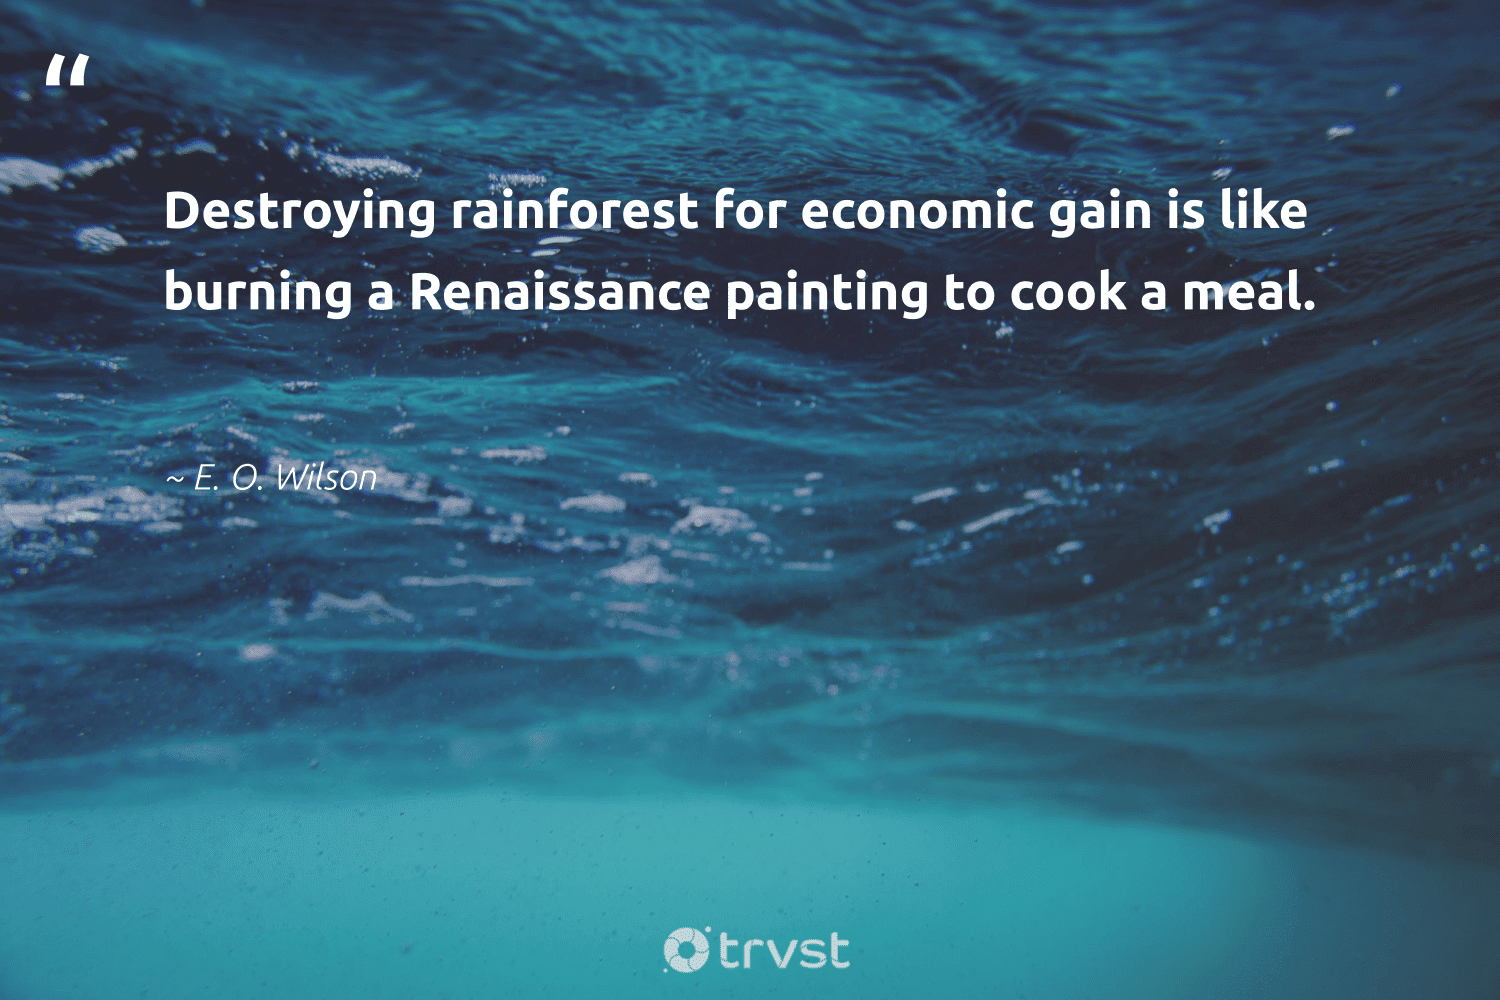 """Destroying rainforest for economic gain is like burning a Renaissance painting to cook a meal.""  - E. O. Wilson #trvst #quotes #green #beinspired #ecofriendly #socialchange #sustainability #impact #getoutside #changetheworld #naturelovers #socialimpact"